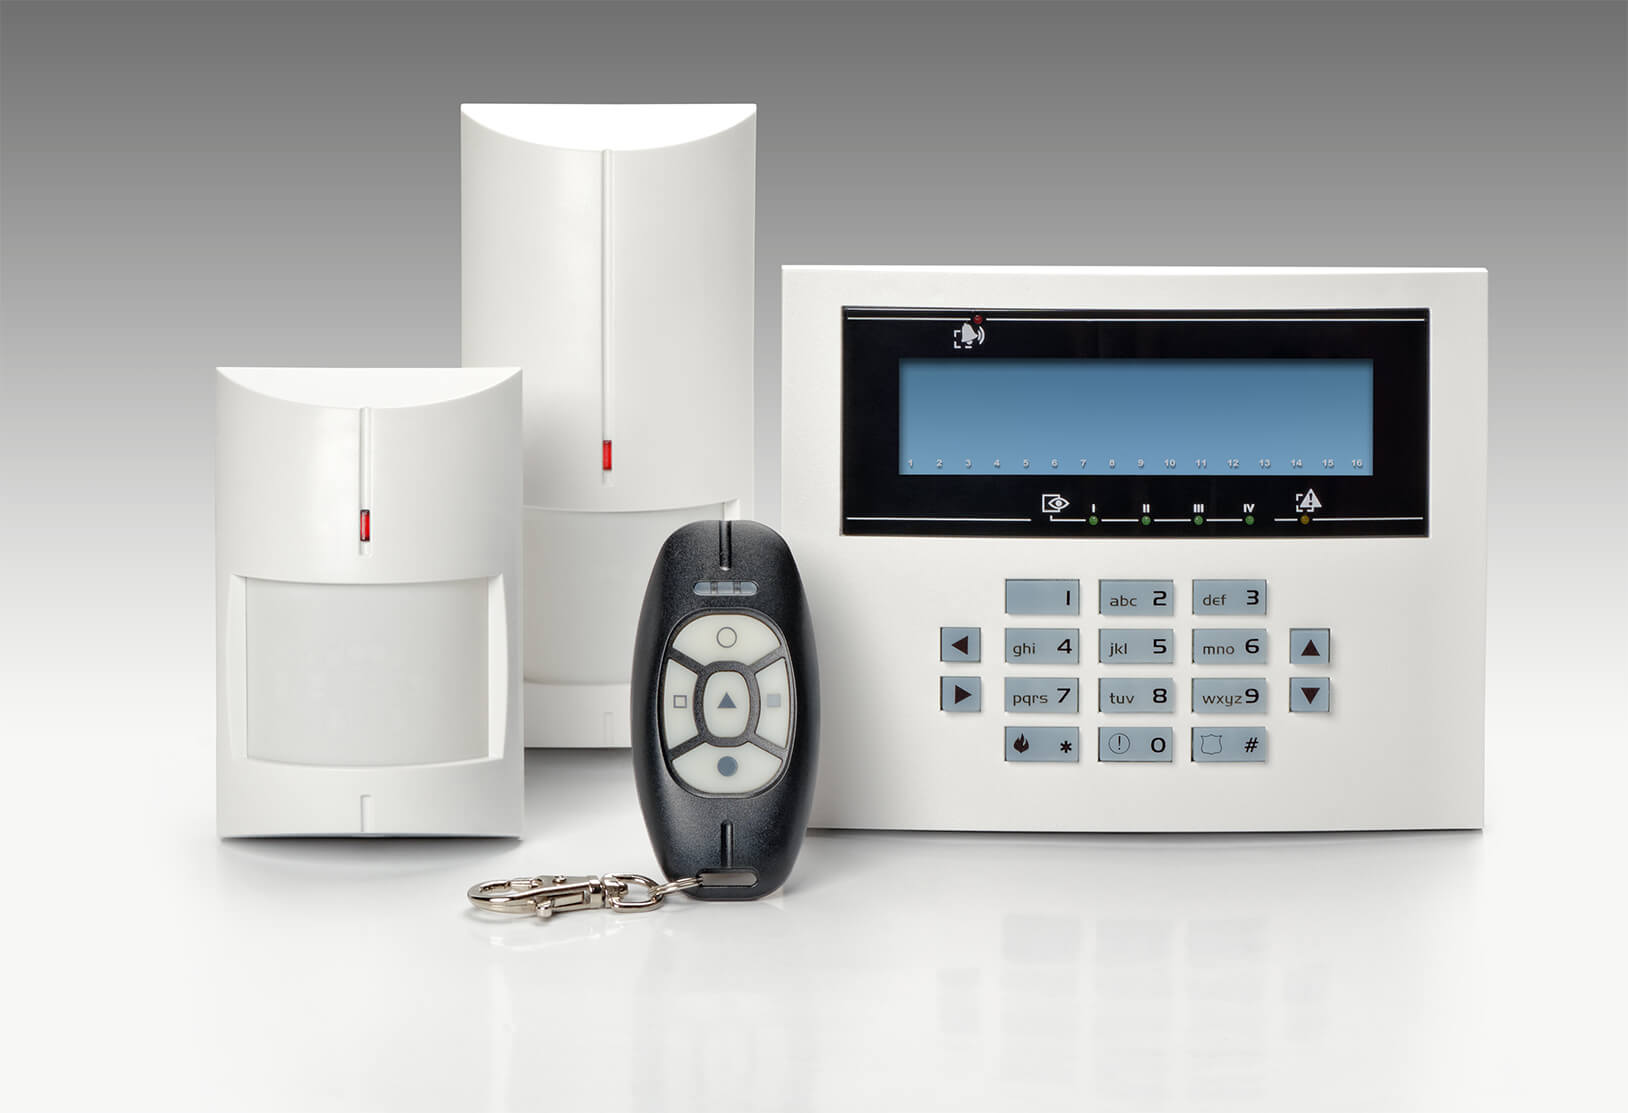 Business & Commercial NSI / NACOSS Approved Burglar Alarms In London - Local London security company.Call 02078872244 - Dedicated to Safety & Security. Companies, shops,hotels  ..